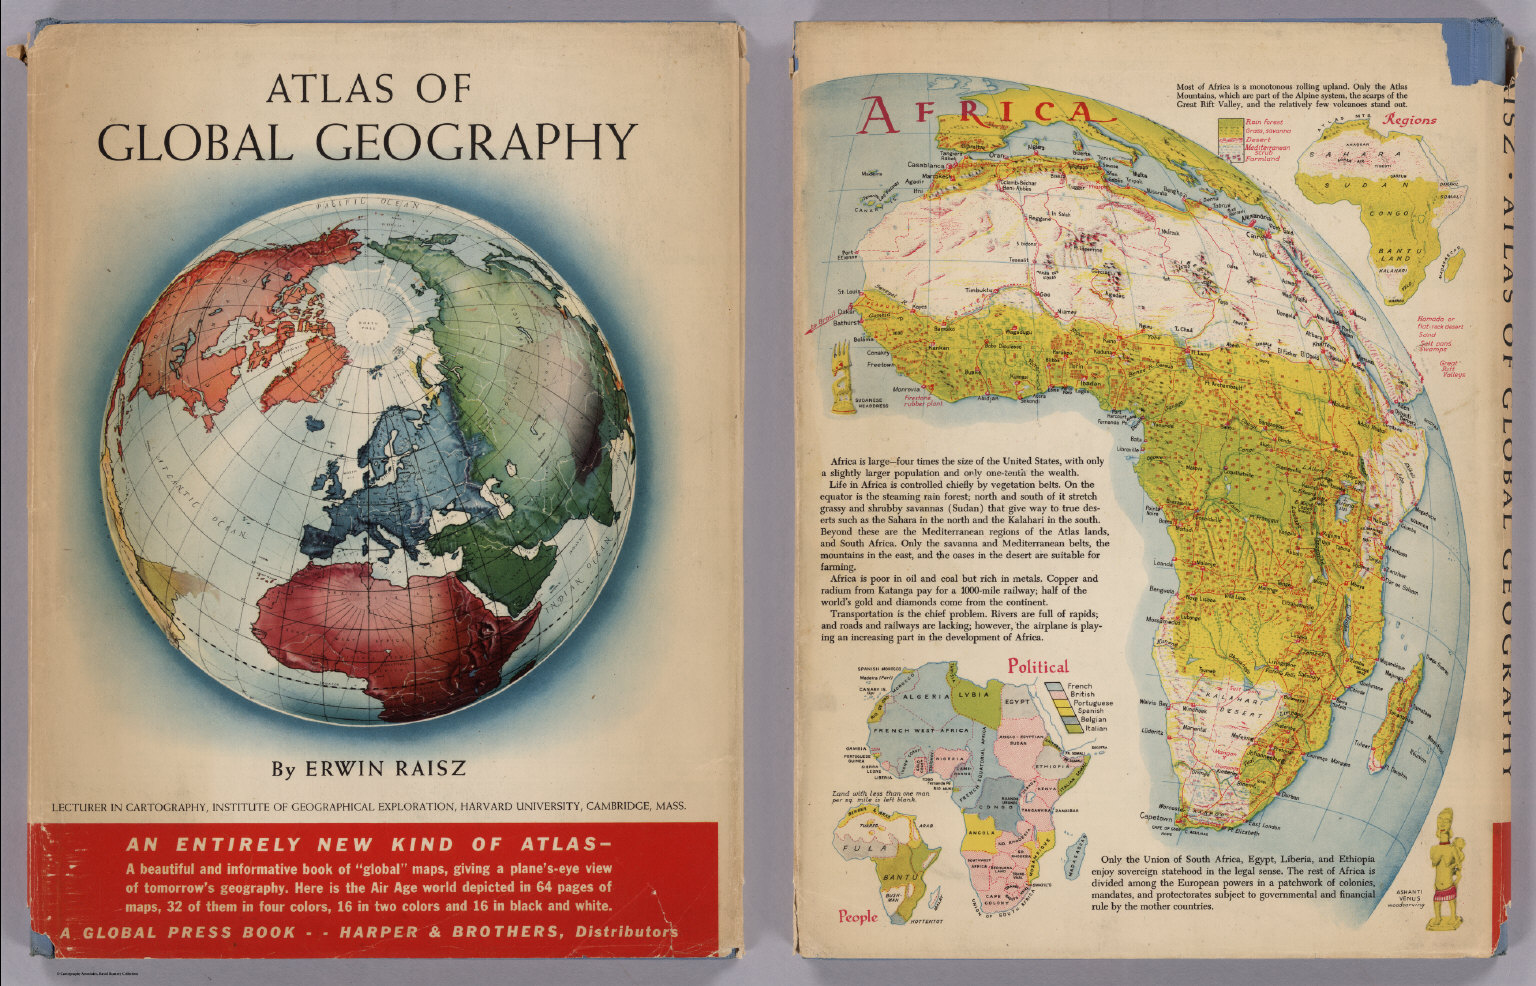 Covers atlas of global geography david rumsey historical map covers atlas of global geography gumiabroncs Images